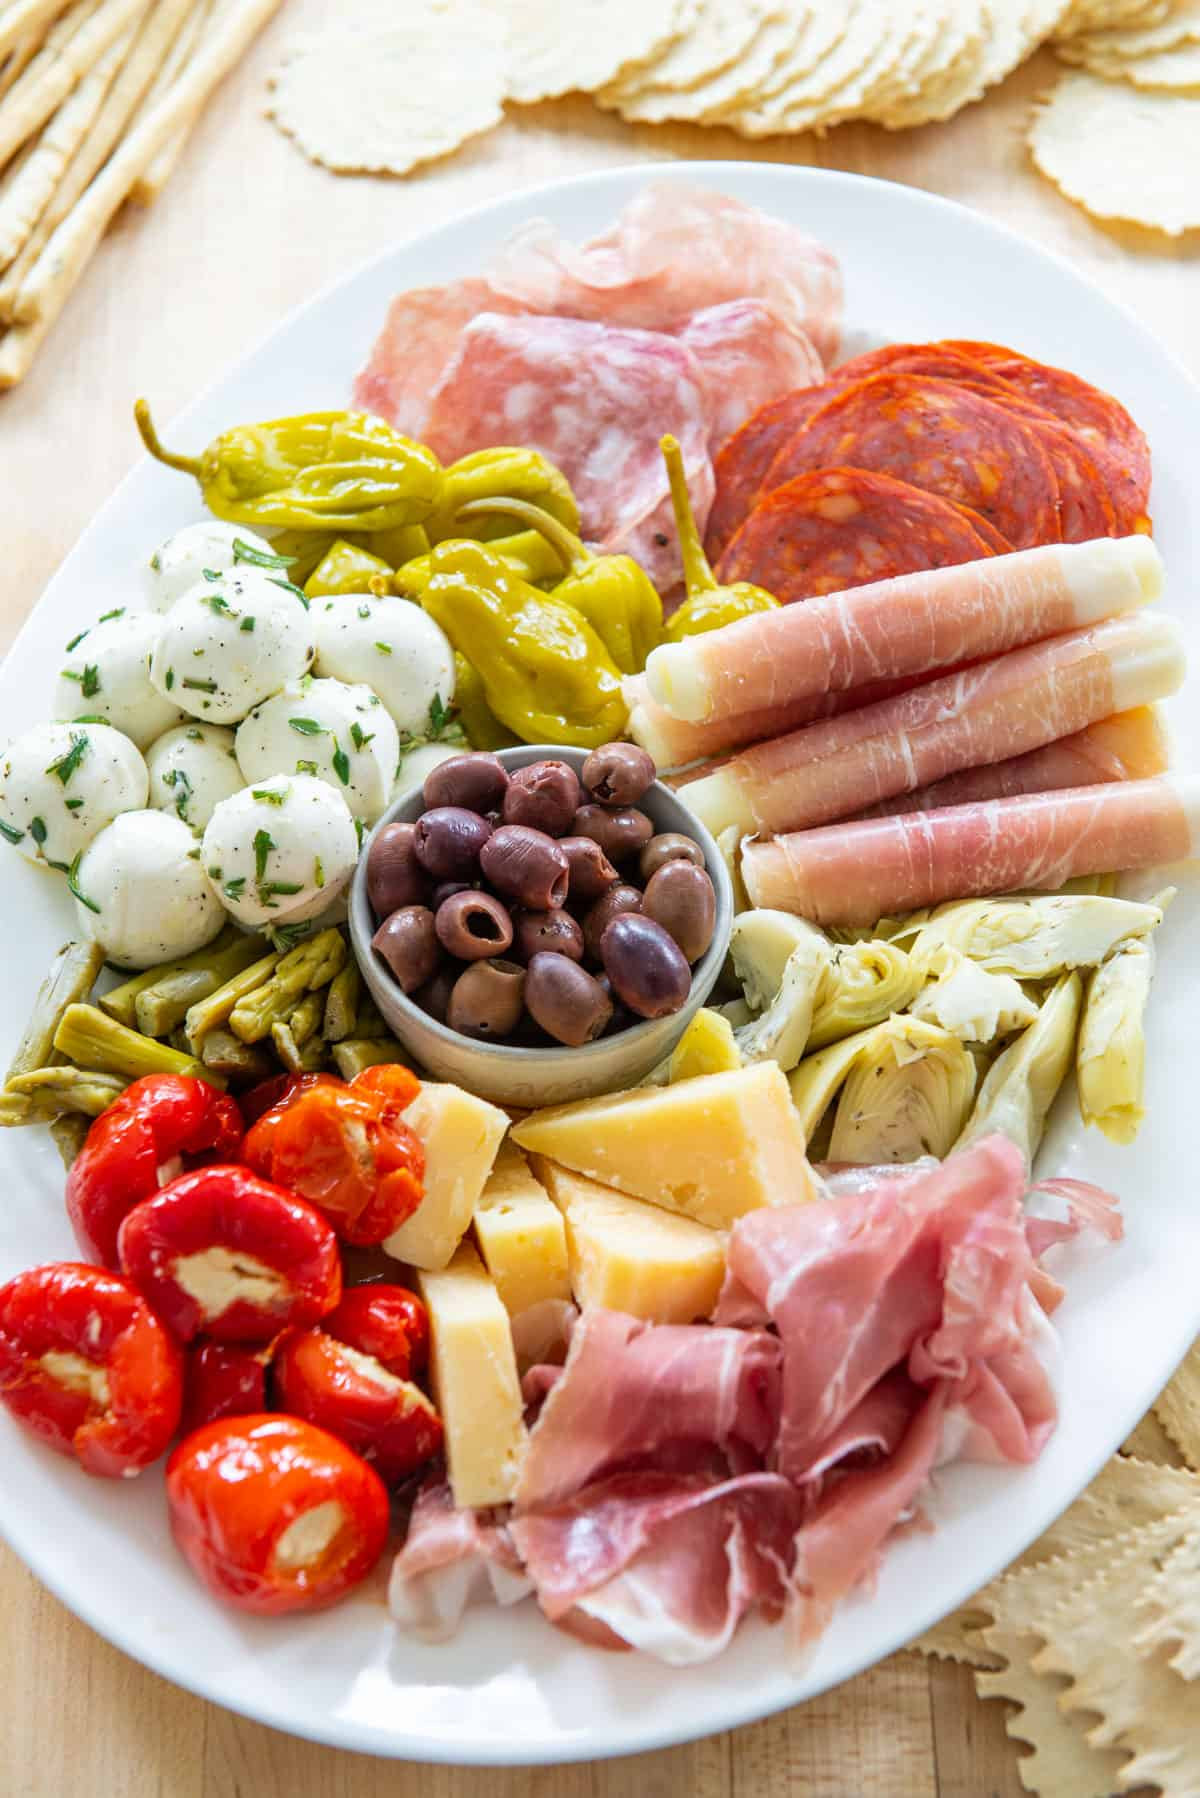 Antipasto On a White Platter with Olives, Stuffed Peppers, Prosciutto, and Cheeses